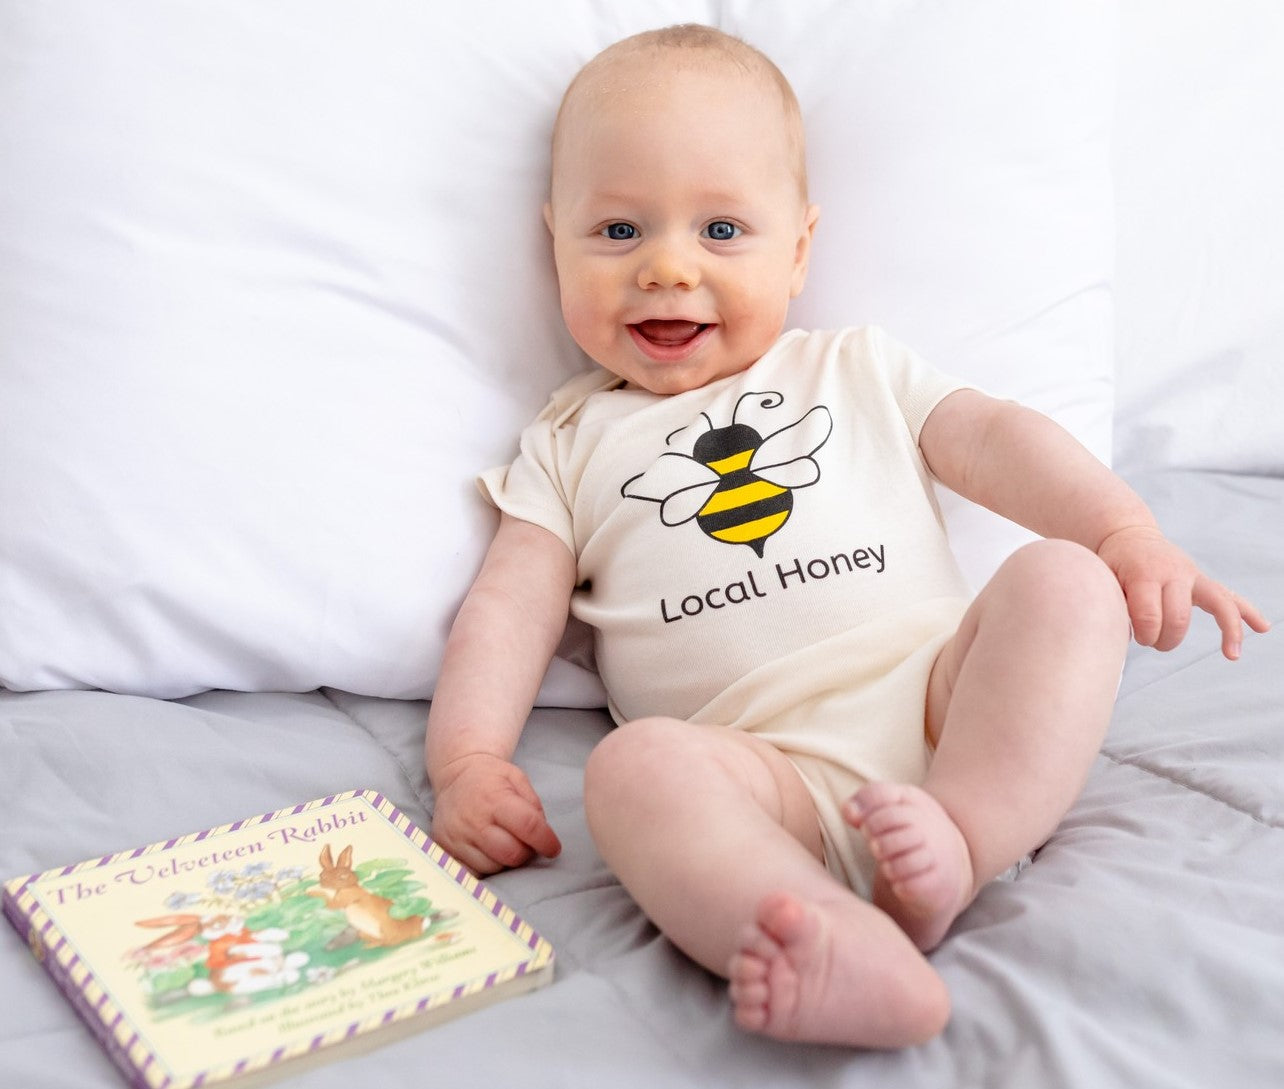 What size baby onesie should you buy to take baby home from the hospital?